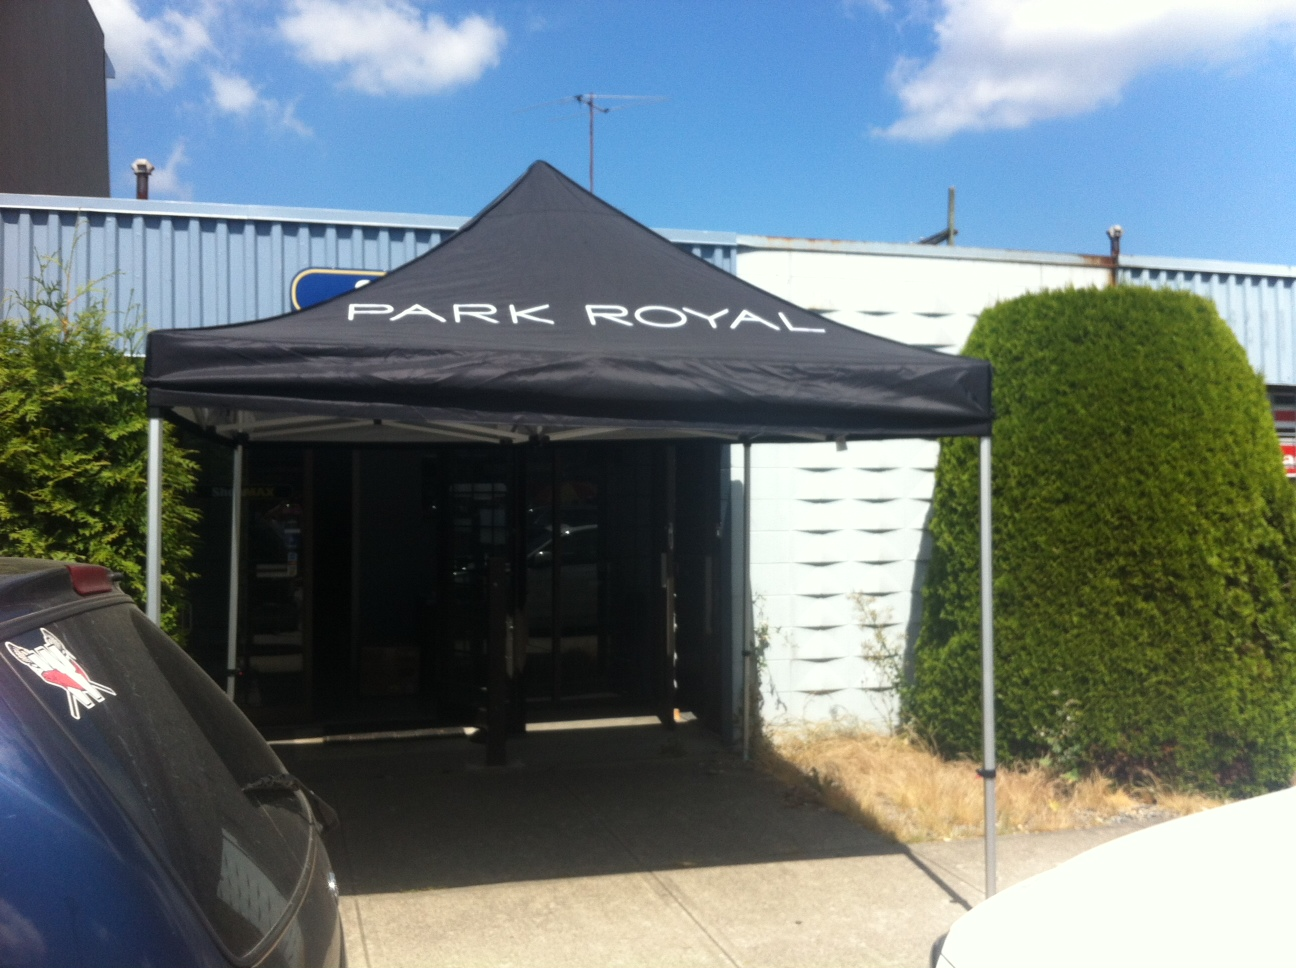 10x10 pop up canopy tent printing & Pop up 10x10 Printed Canopy Park Royal West Vancouver - Oh my ...